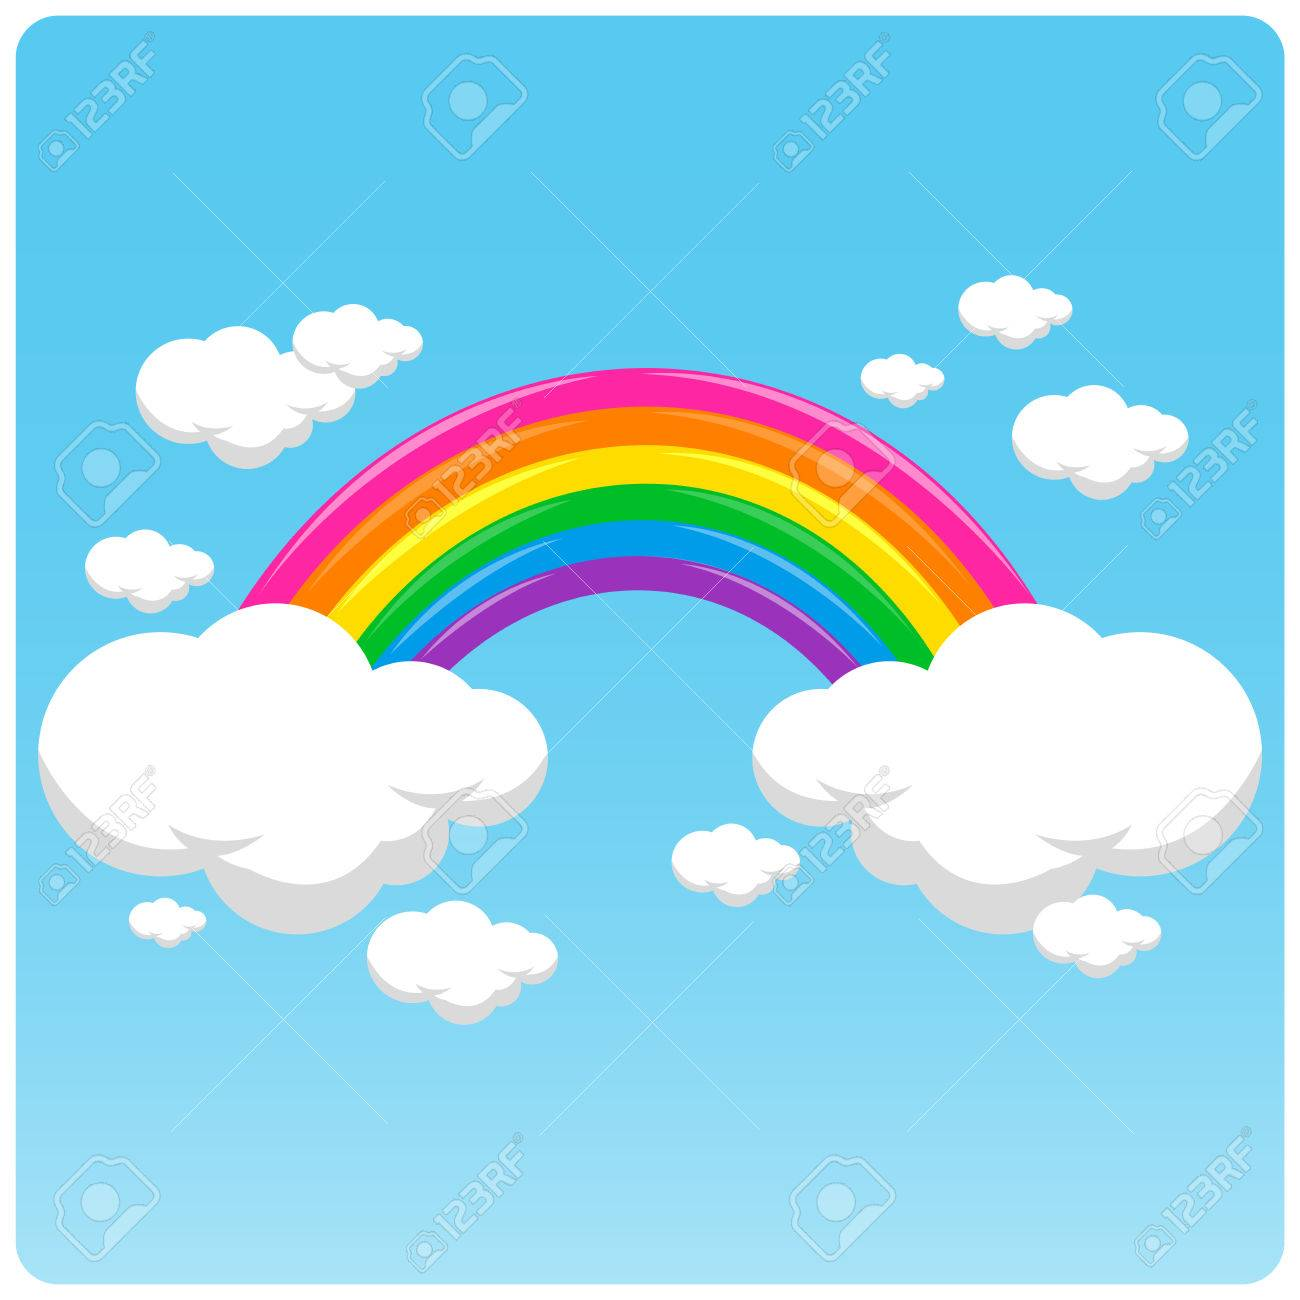 Vector illustration of a rainbow and clouds in the sky. - 46750520